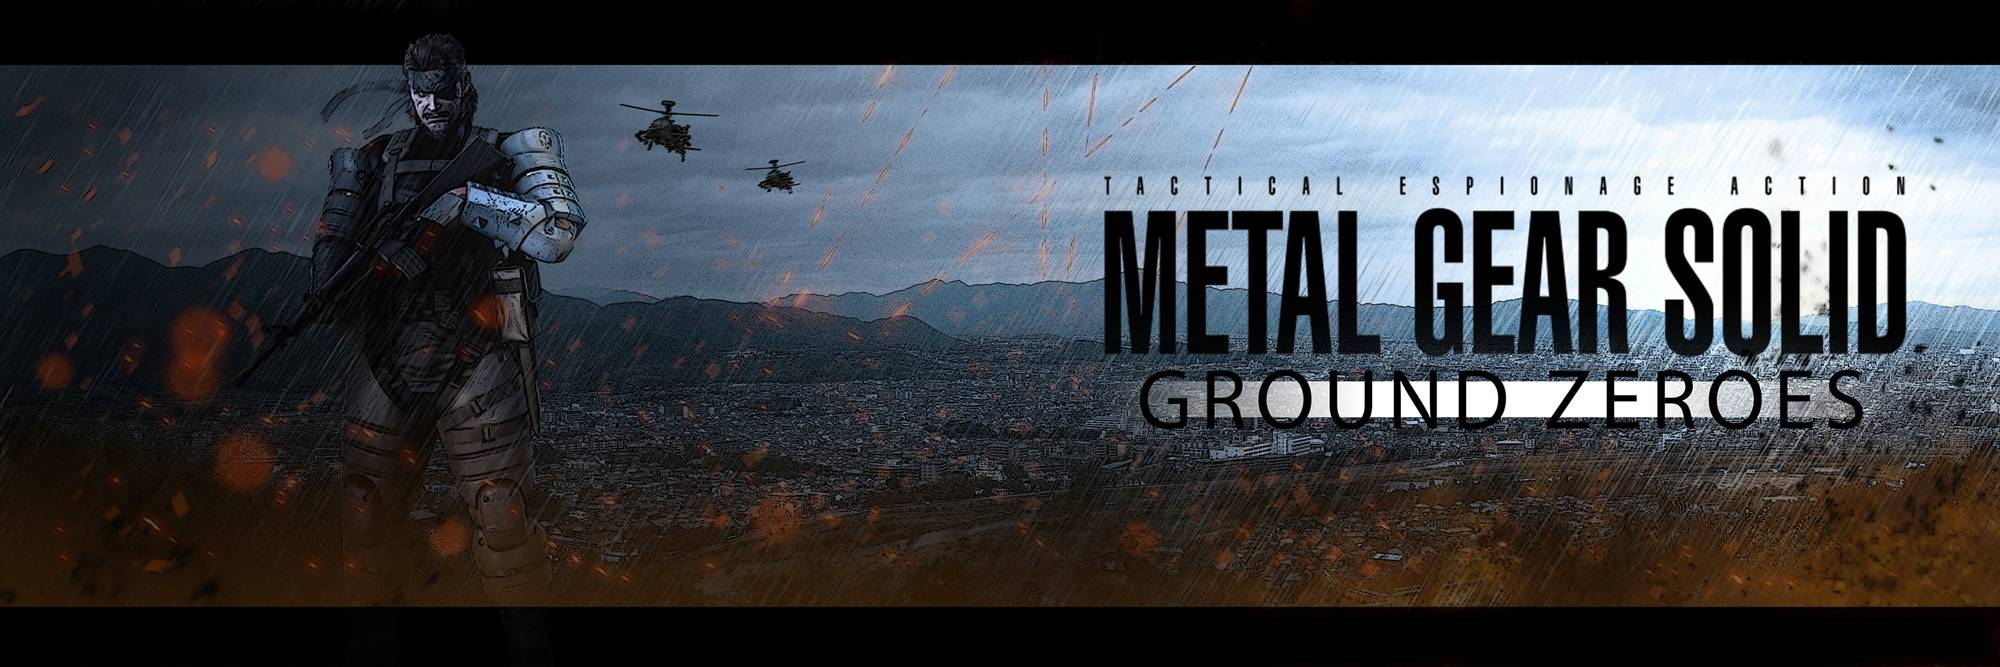 metal gear solid ground zeroes wallpapers in hd « video game news